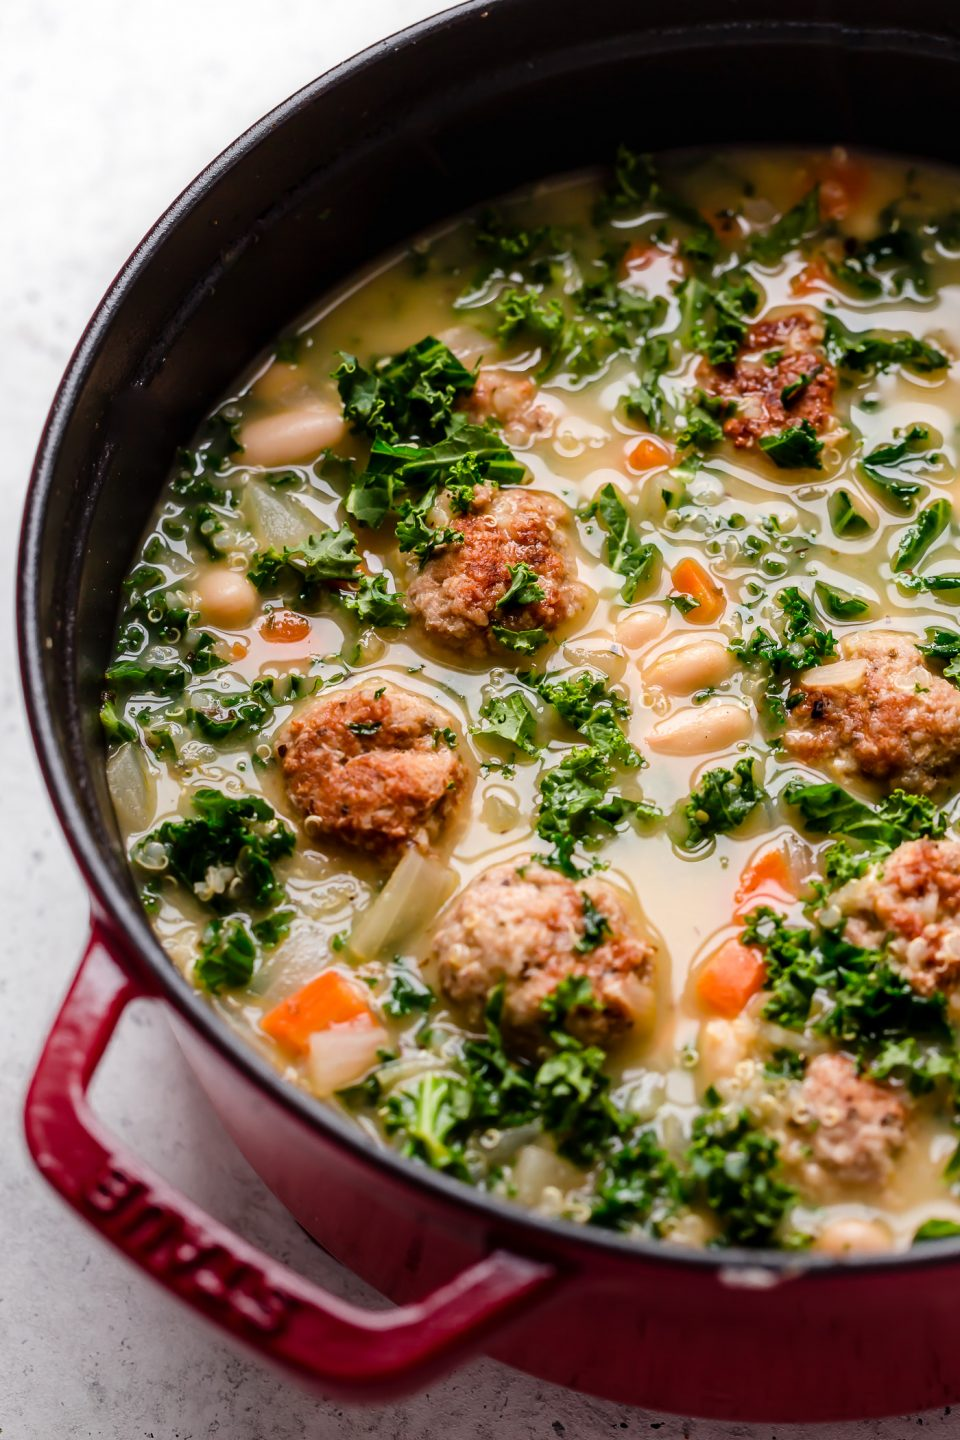 Healthy Italian wedding soup shown in a small dutch oven.